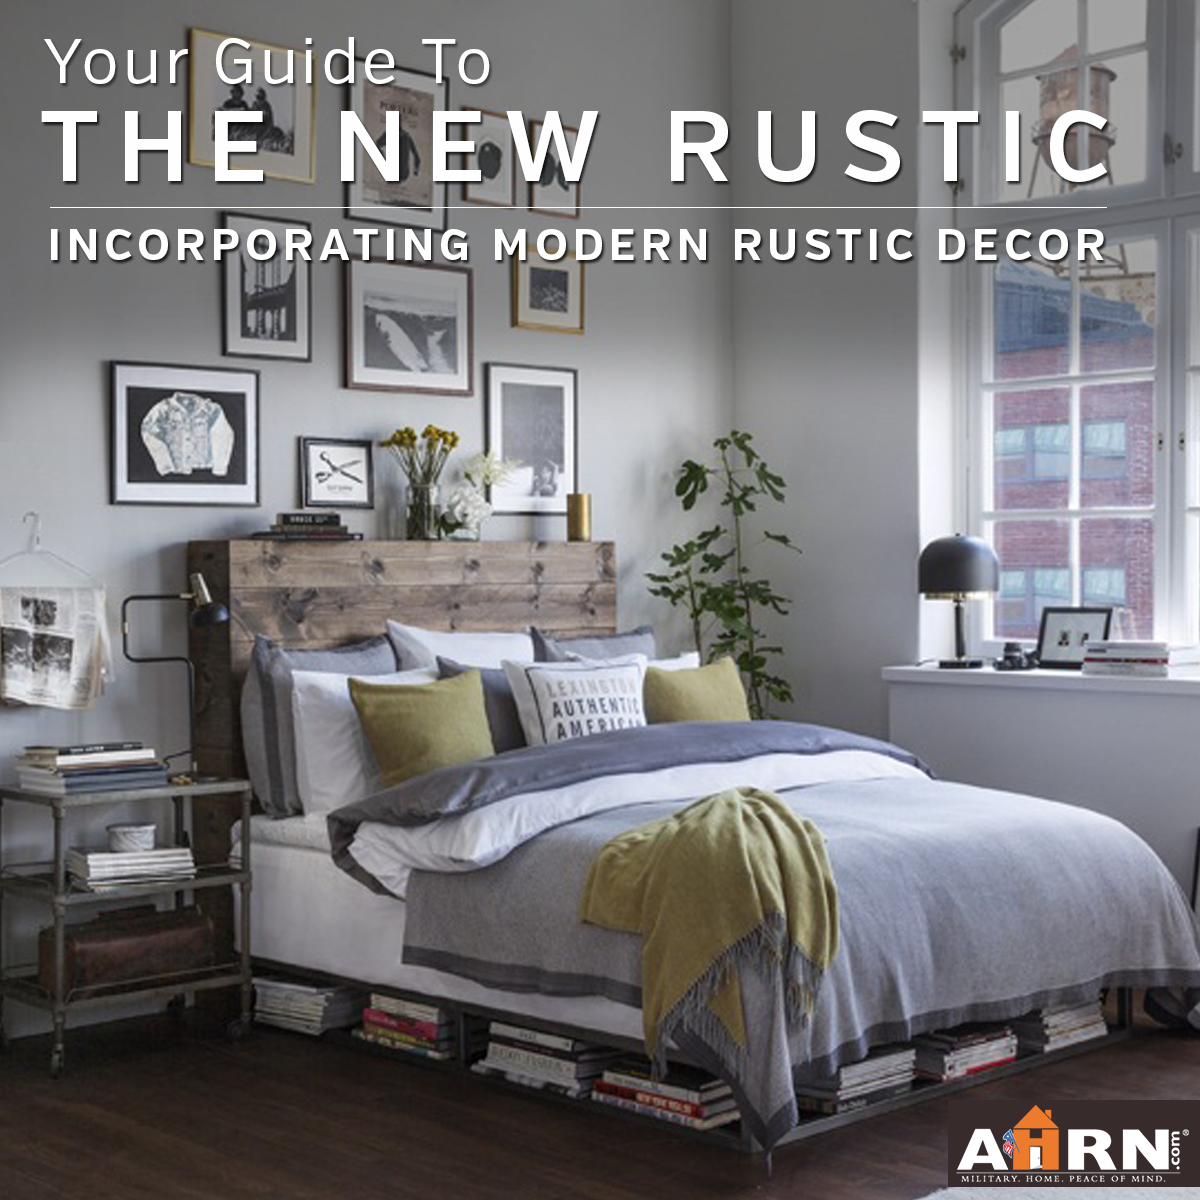 A Guide To Using Pinterest For Home Decor Ideas: Your Guide To The New Rustic Decor